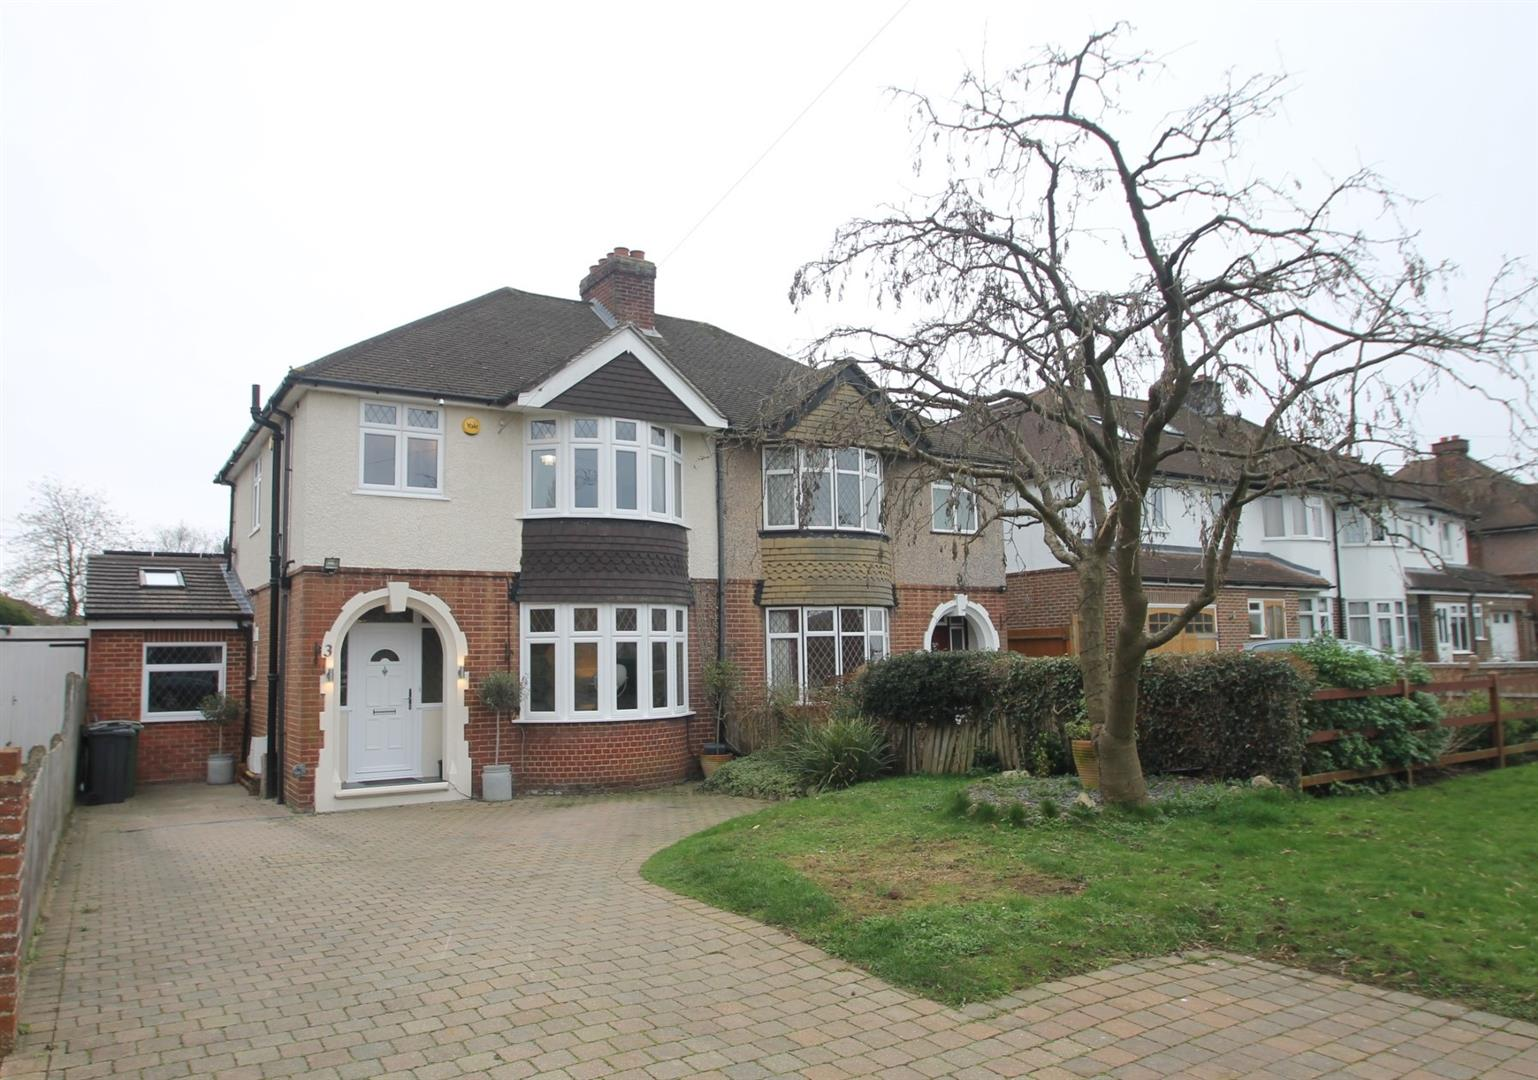 4 Bedroom Semi Detached House For Sale In Maidstone